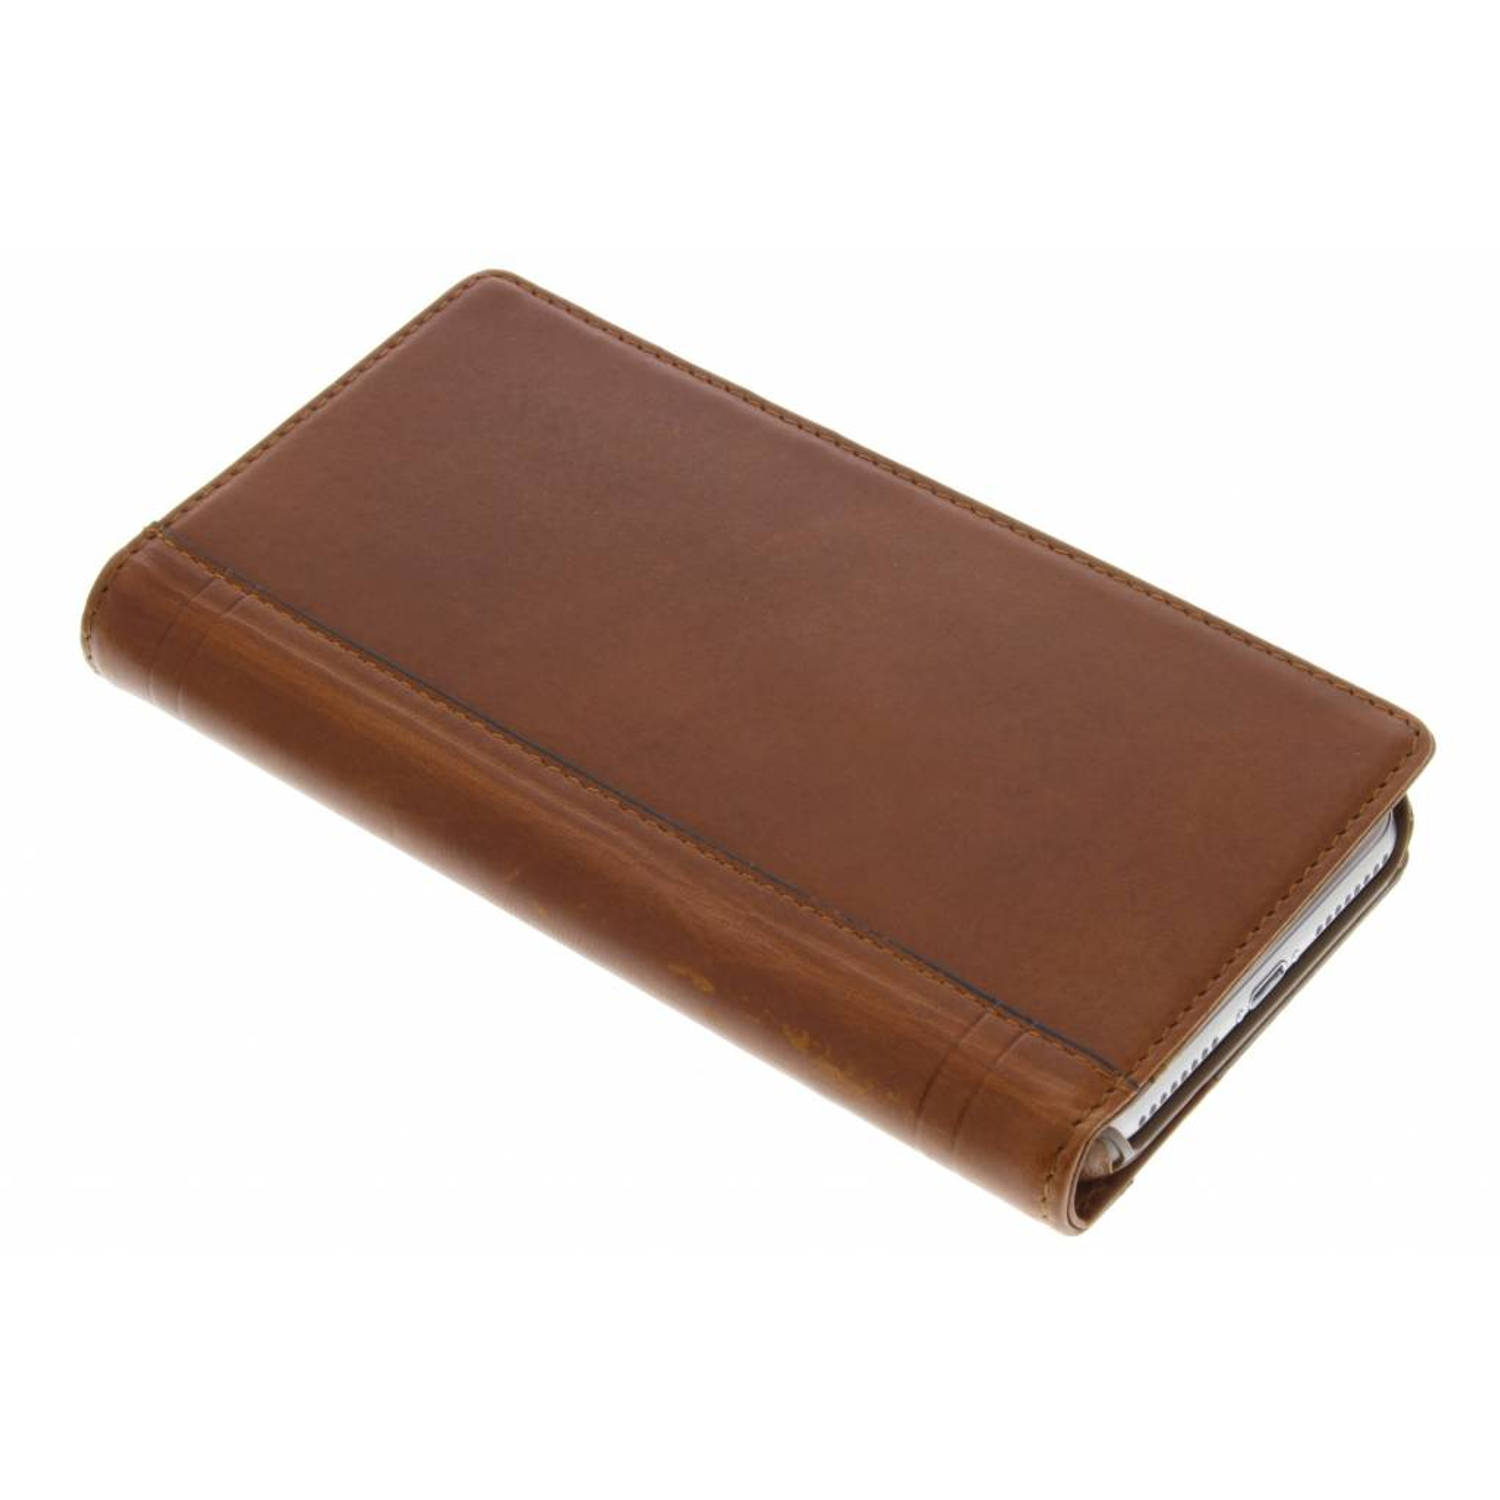 Journal Wallet Case voor de iPhone 8 Plus / 7 Plus - Cognac